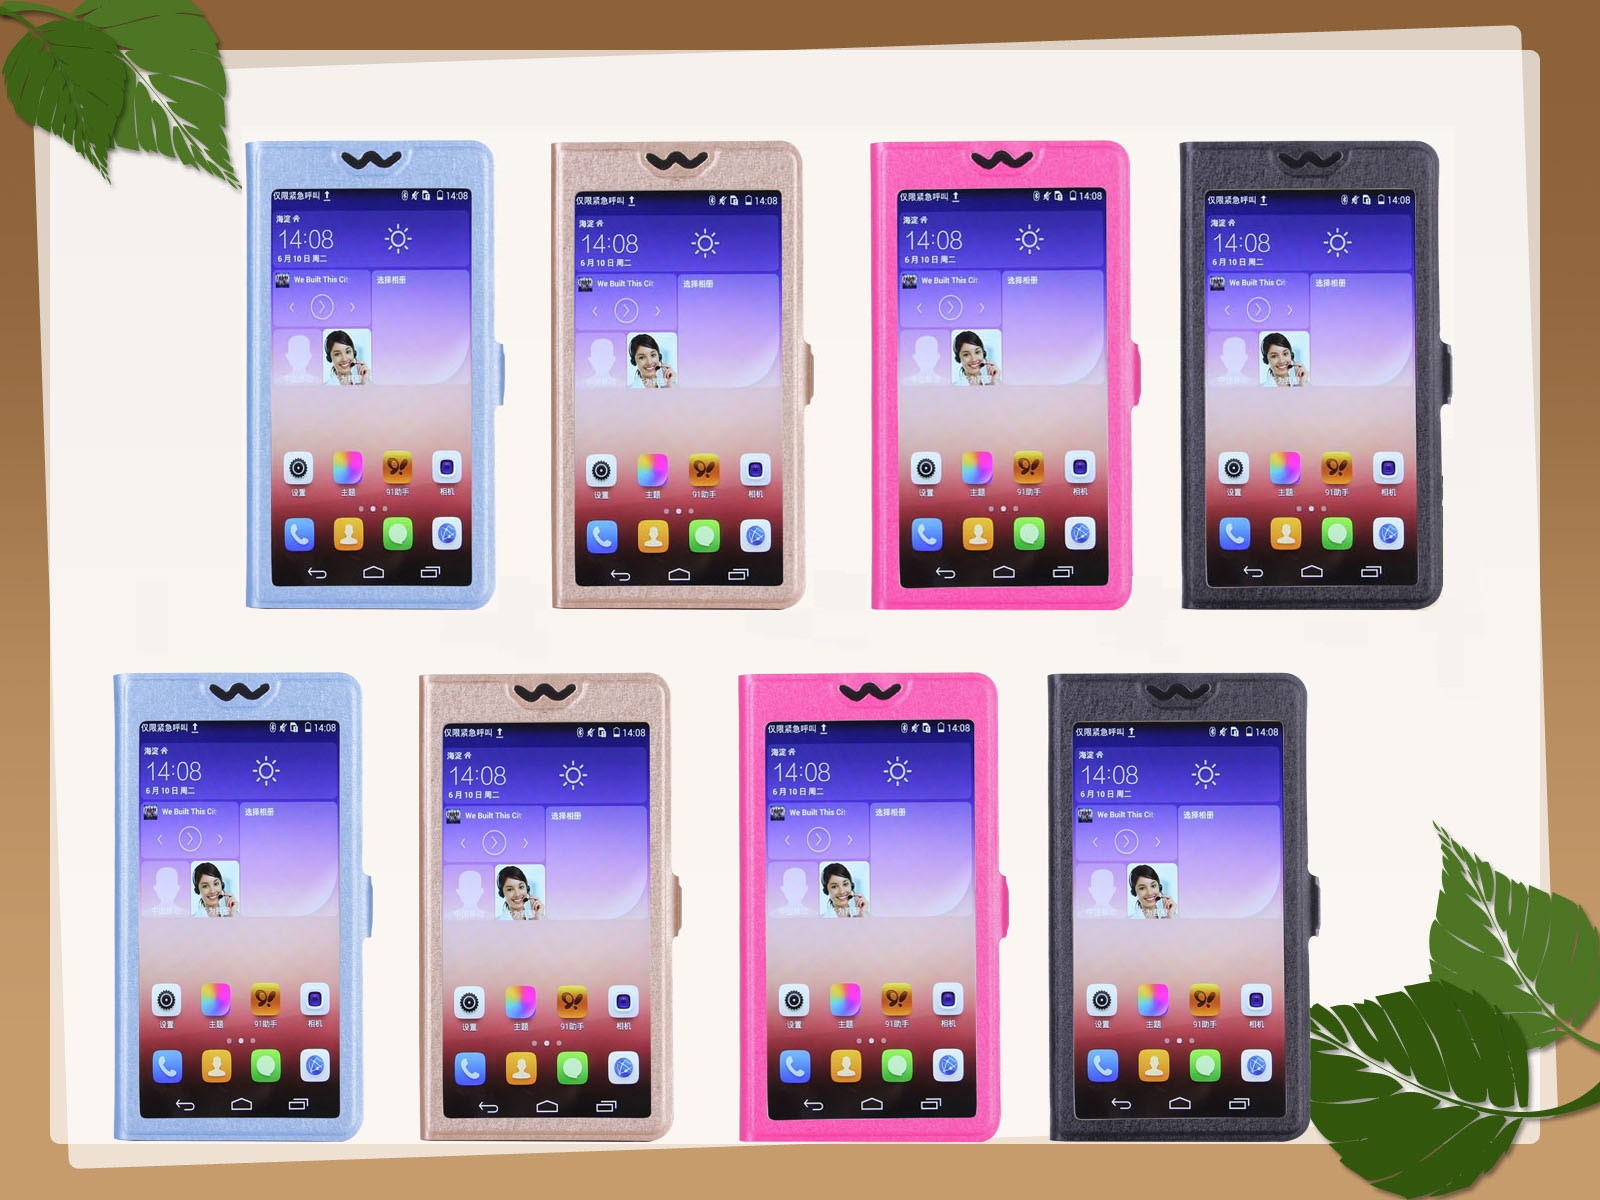 New Full View Windows PU Leather Stand Phone Case for Fly FS454 Nimbus 8 Flip for Fly Cirrus 12 FS516 for Fly FS451 Nimbus 1